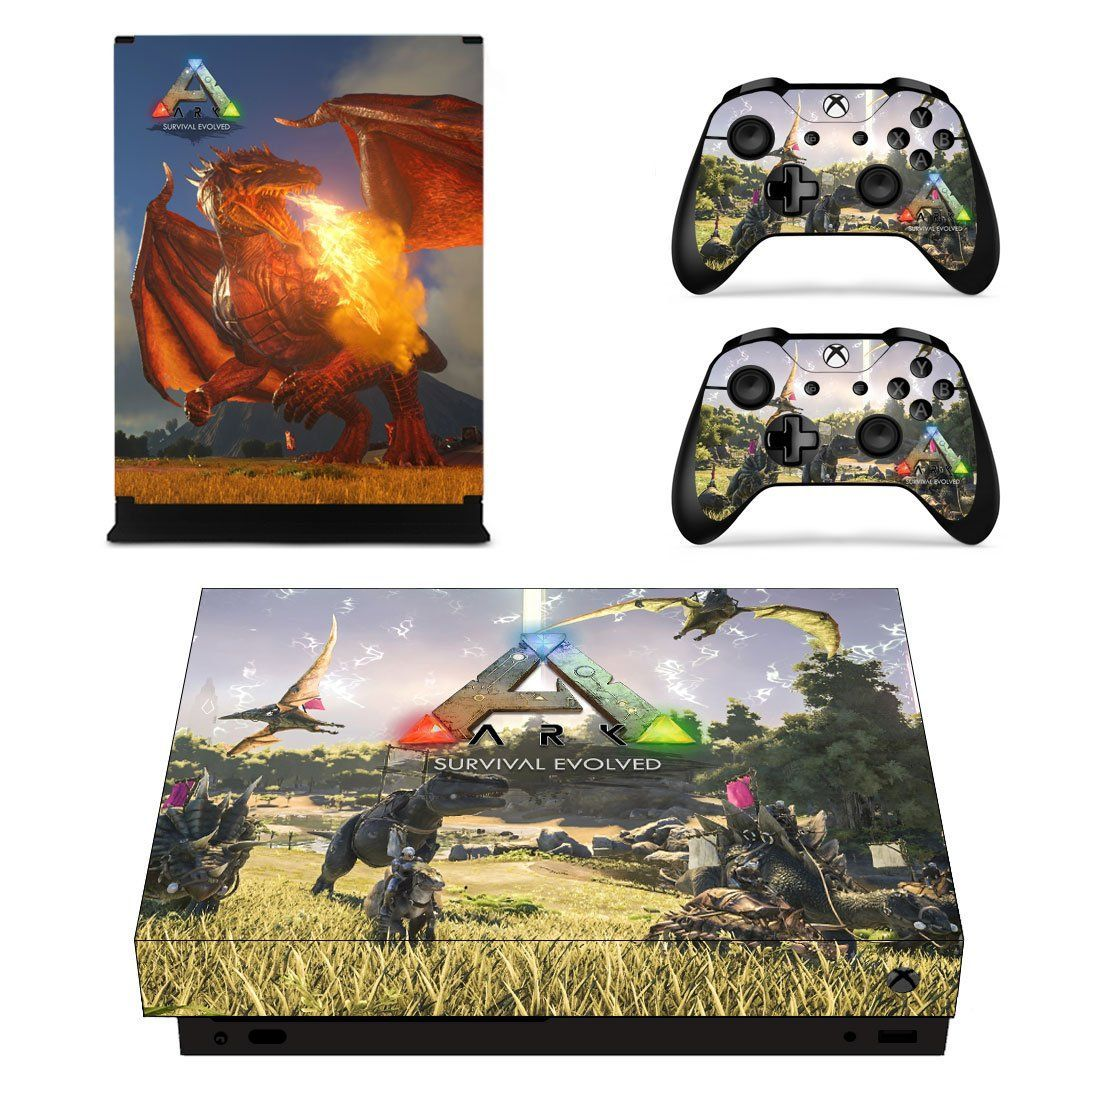 ARK Survival Evolved xbox one X skin decal for console and 2